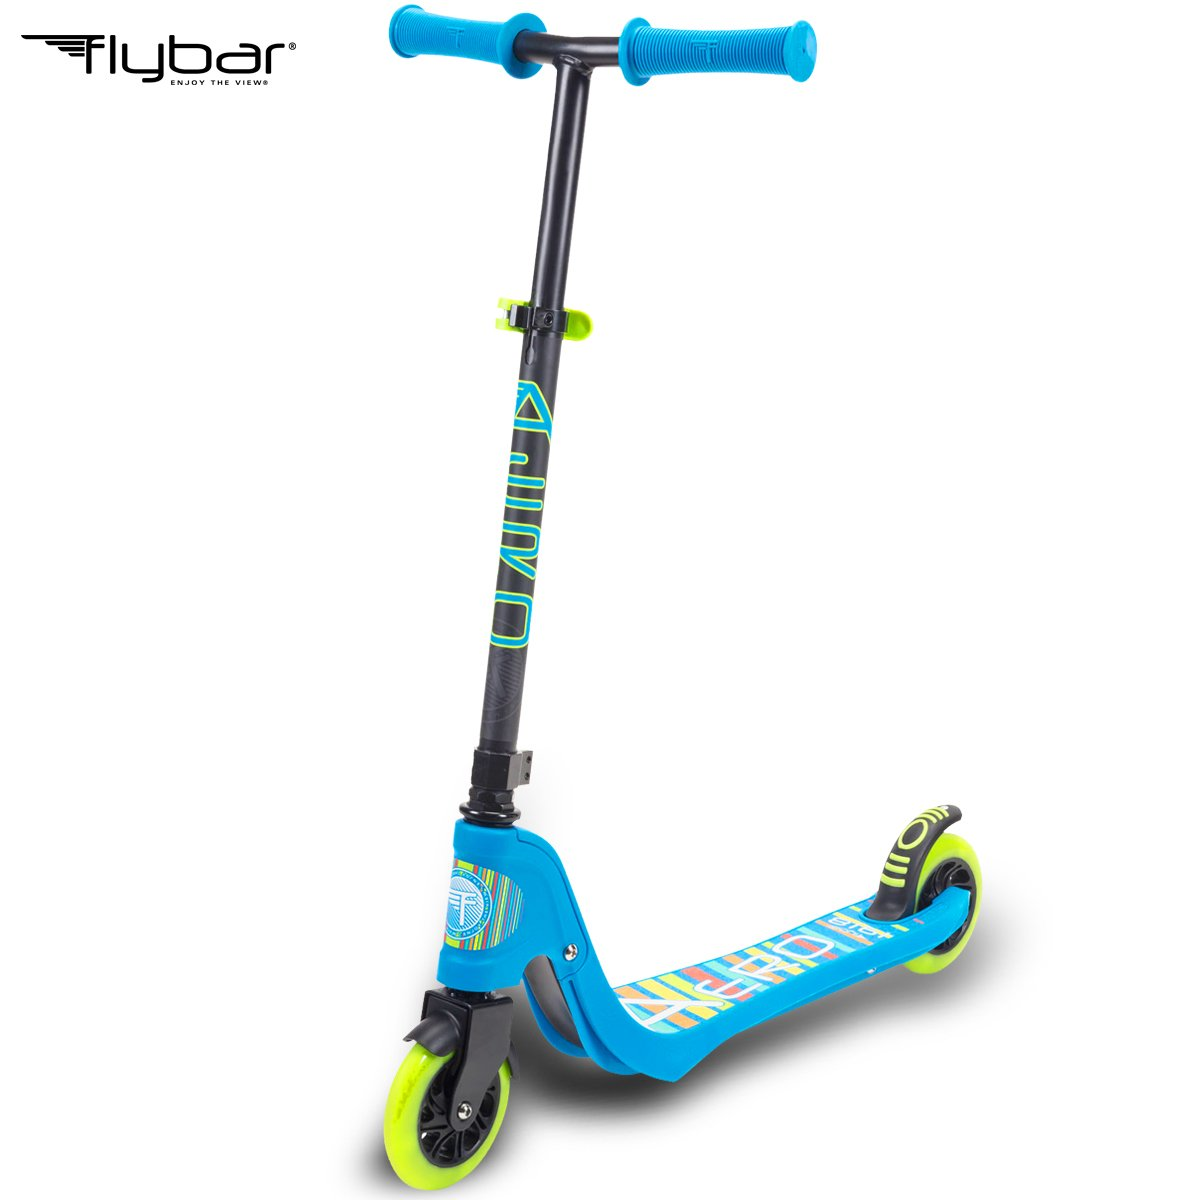 Flybar Aero 2-Wheel Kick Scooter For Kids With Grip Tape Deck, ABEC 5 Bearings, 125mm Light Up Wheels & Adjustable Handlebars - Holds Weights Up To 175 Lbs